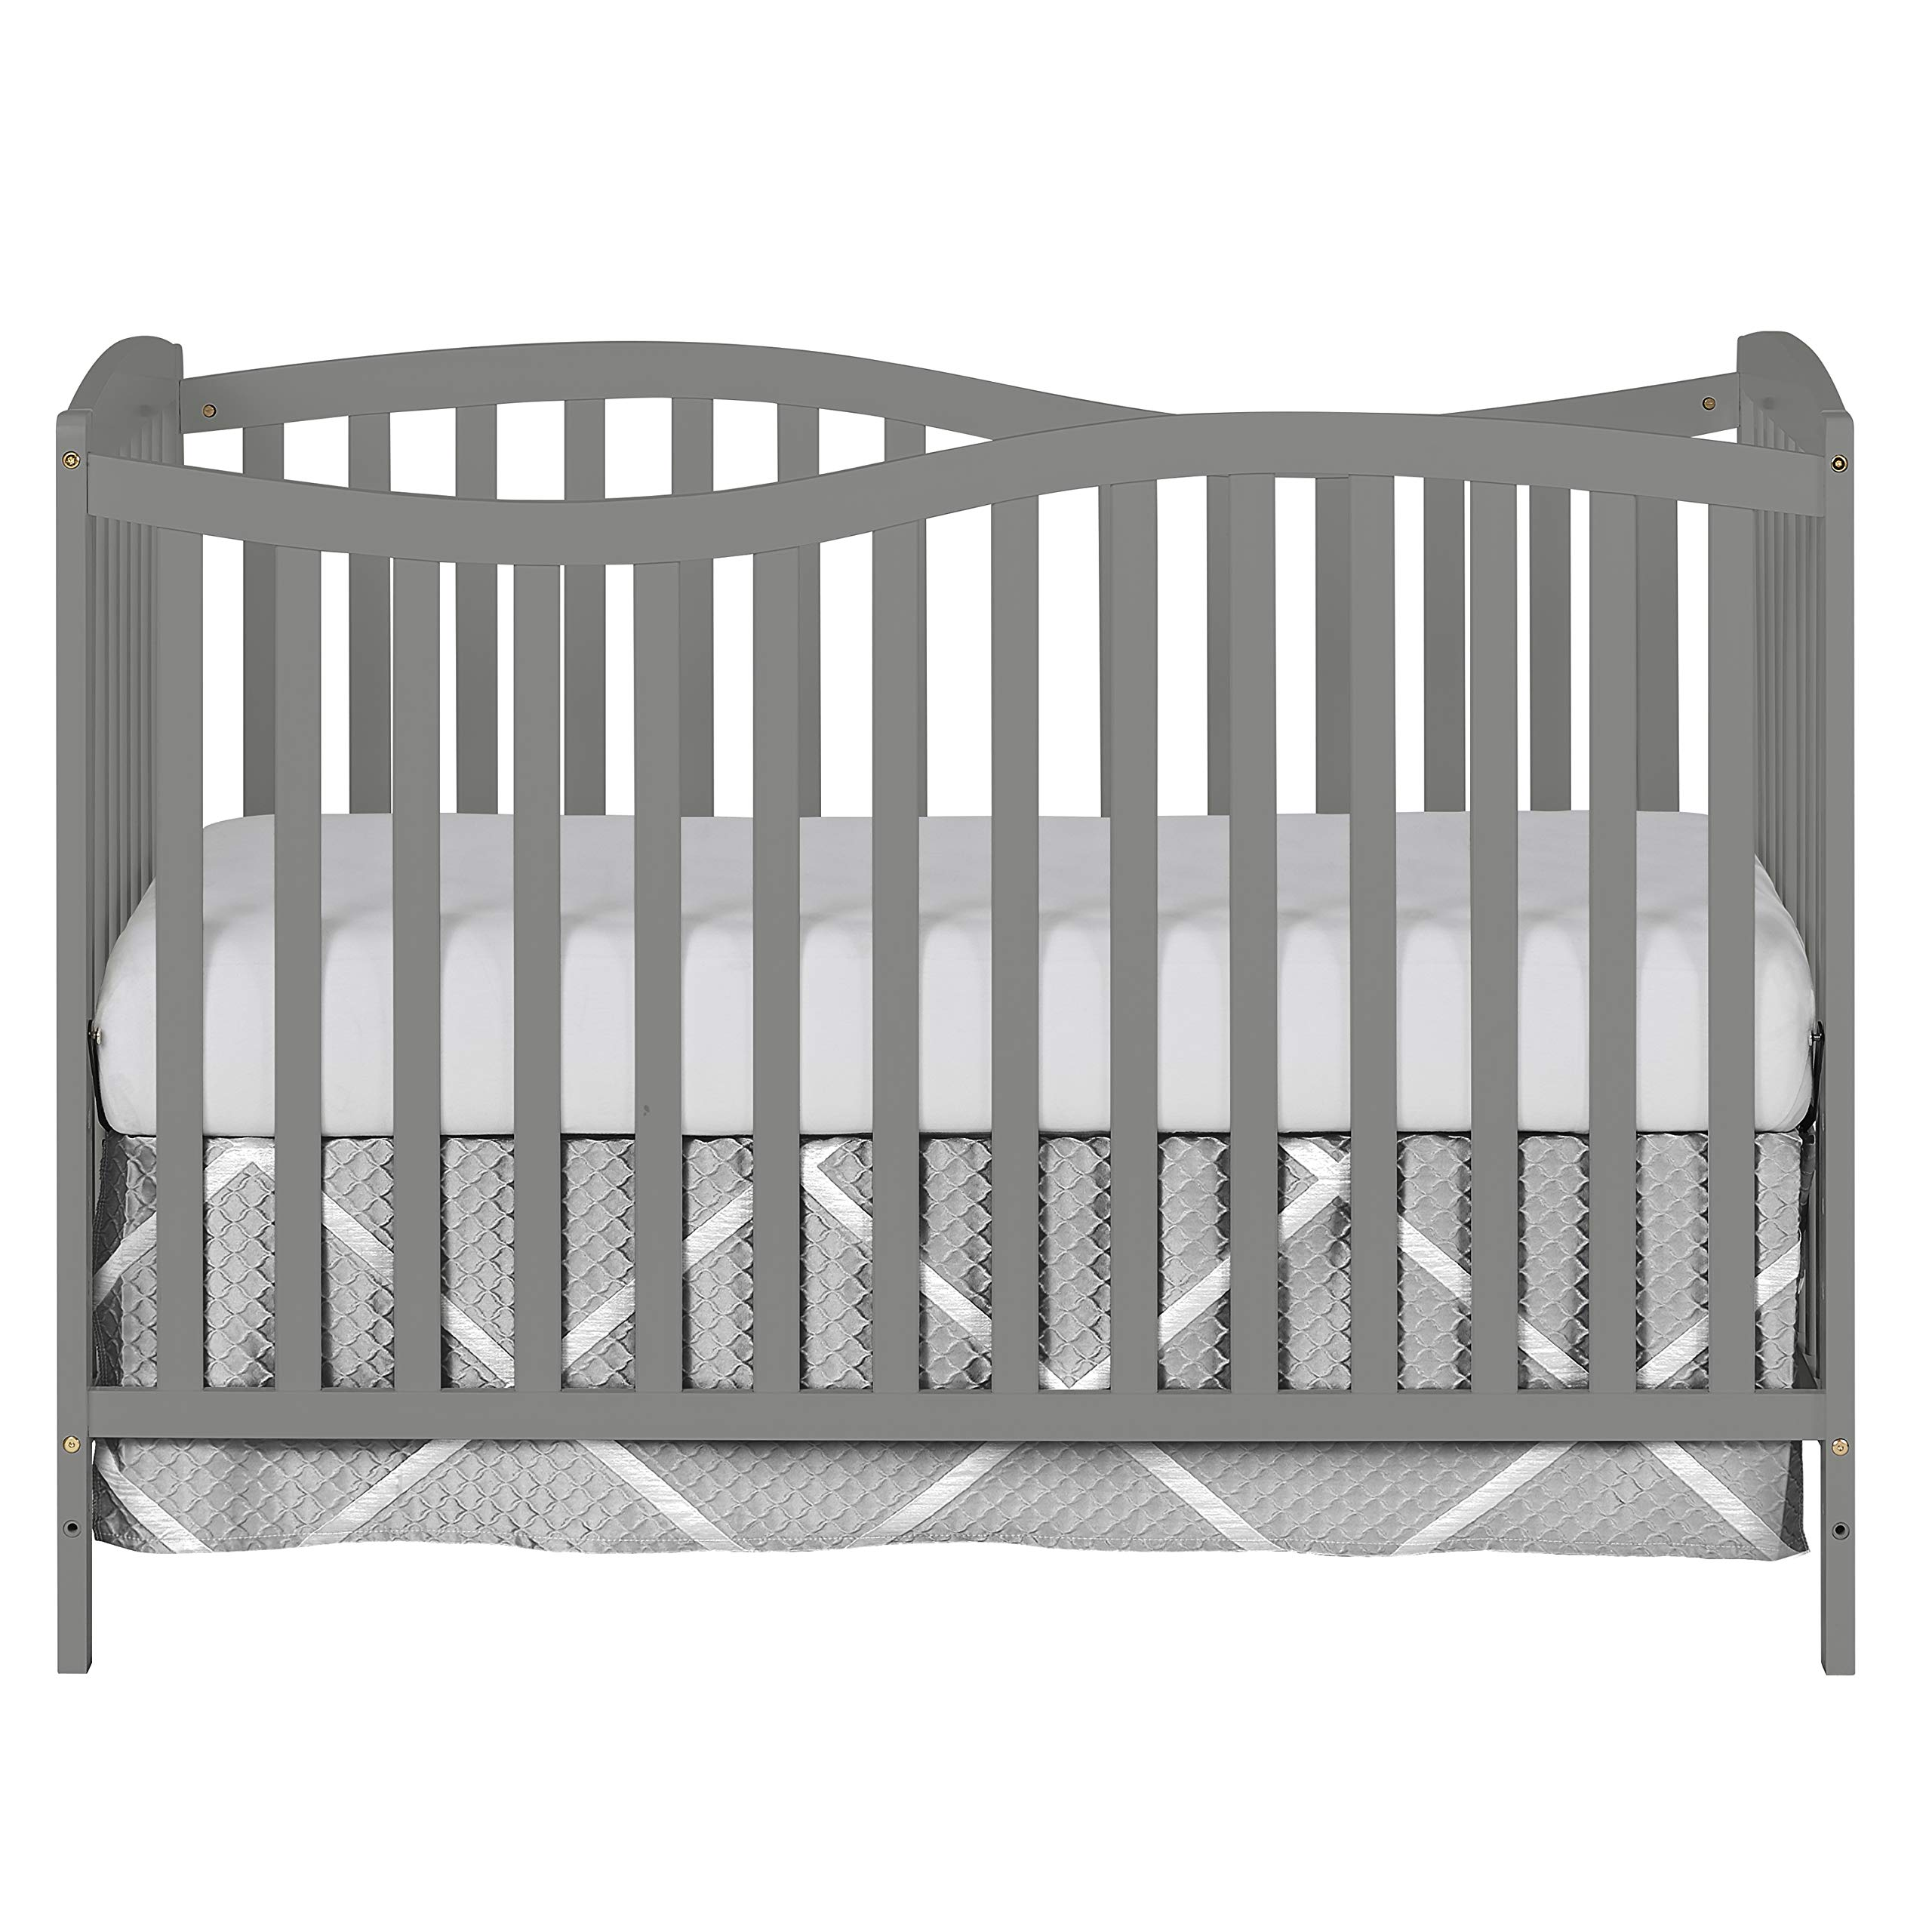 Dream On Me Chelsea 7-in-1 Convertible Crib, Storm Grey by Dream On Me